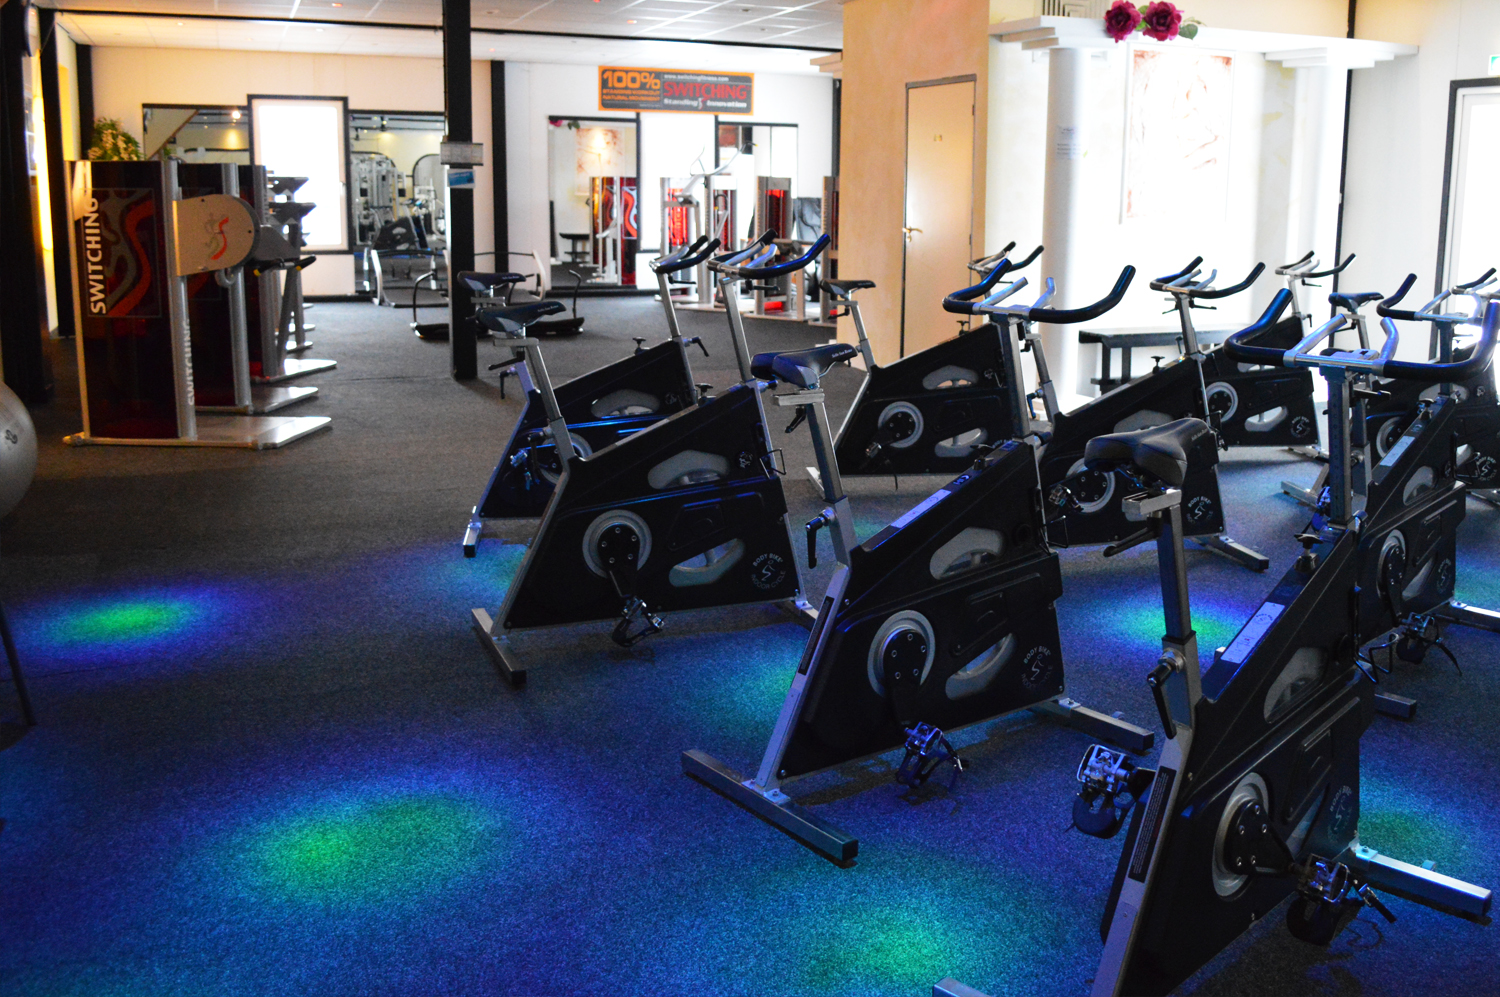 Indoor Cycling - Switching